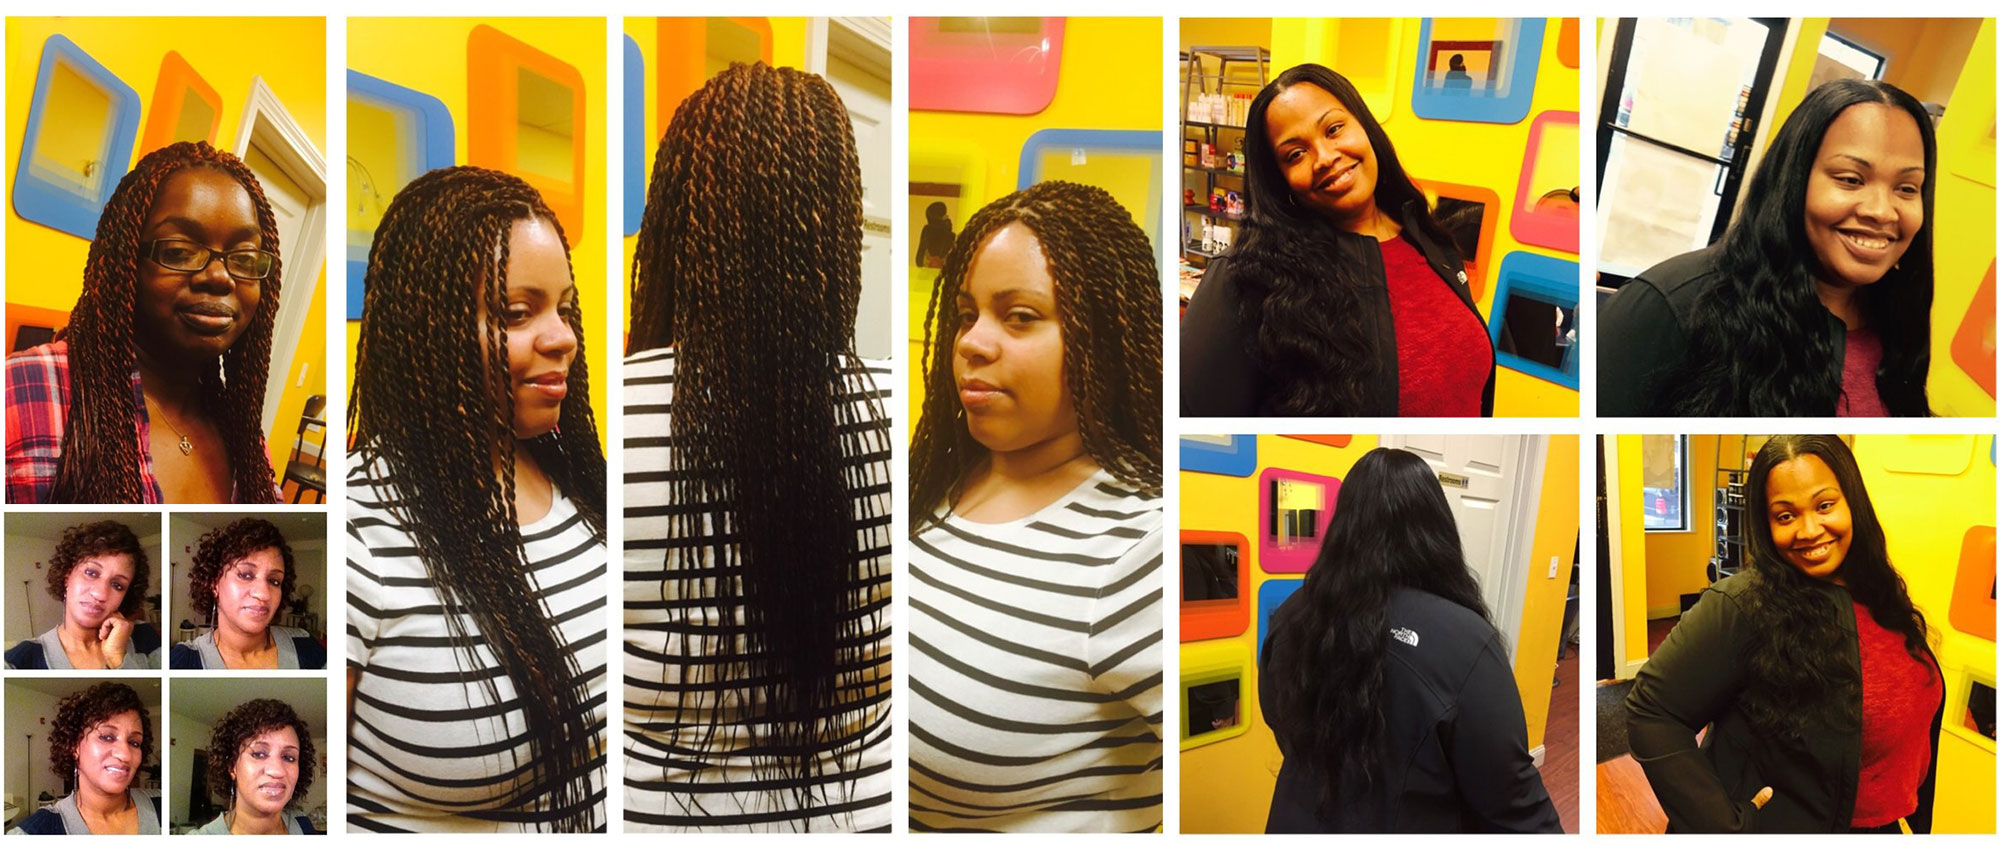 Bbs African Hair Braiding Jackson Ms S Photo